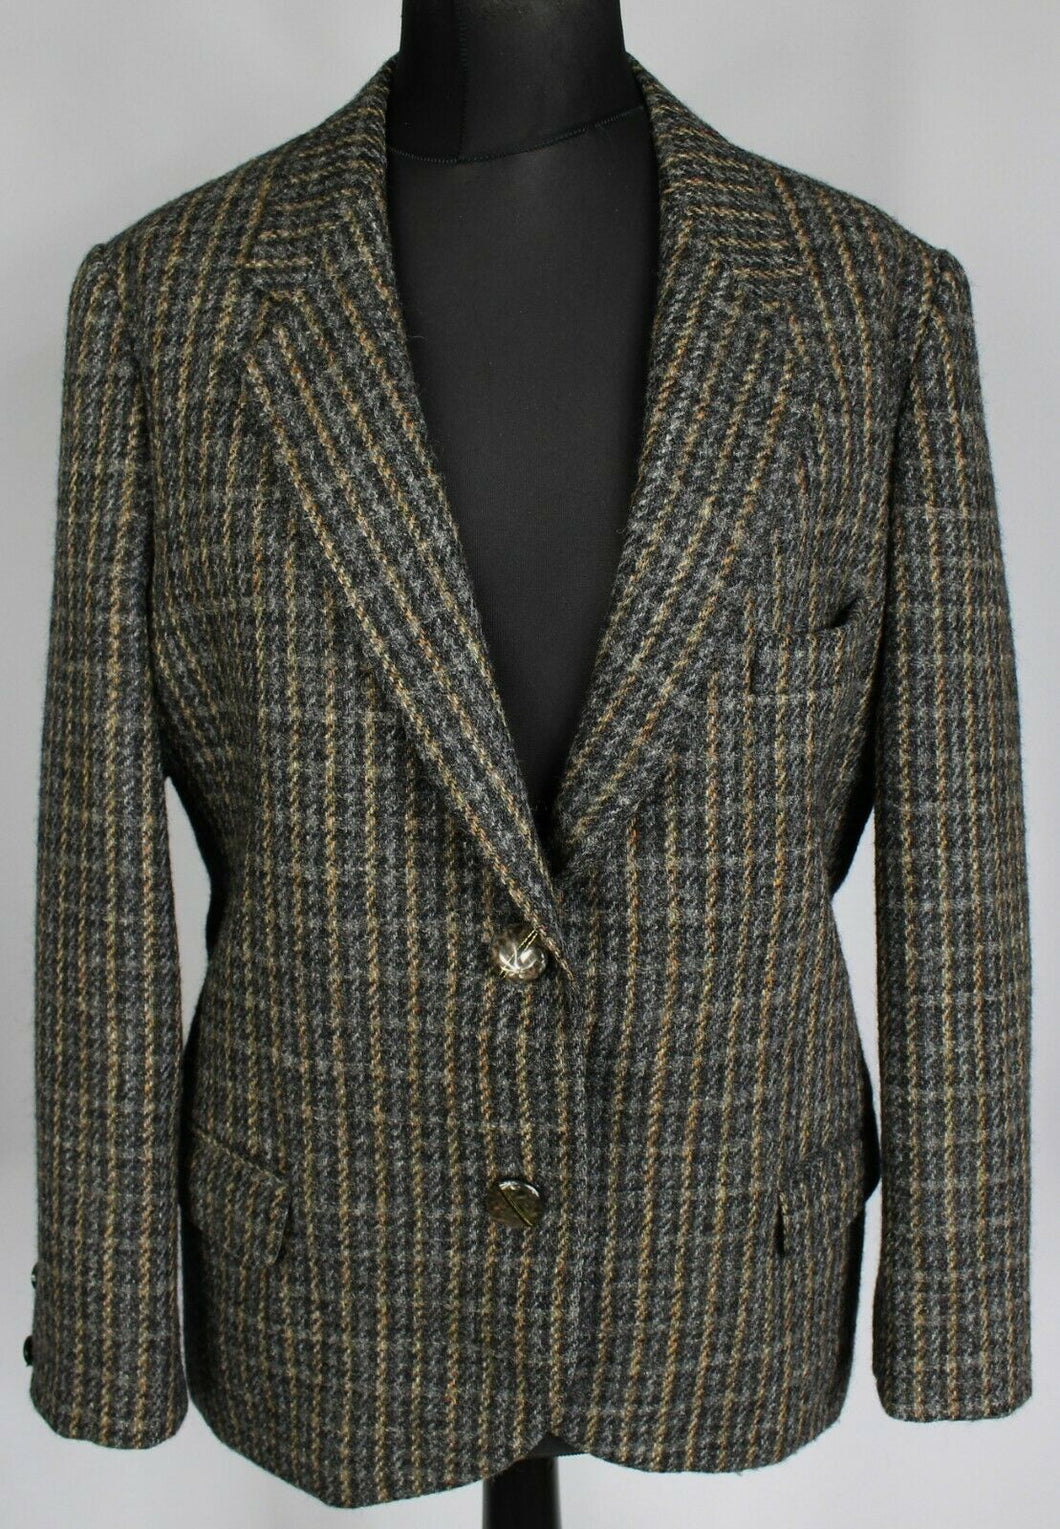 Harris Tweed Jacket Country Check MacKenzie UK 16 EU 44 BEAUTIFUL JACKET 3674